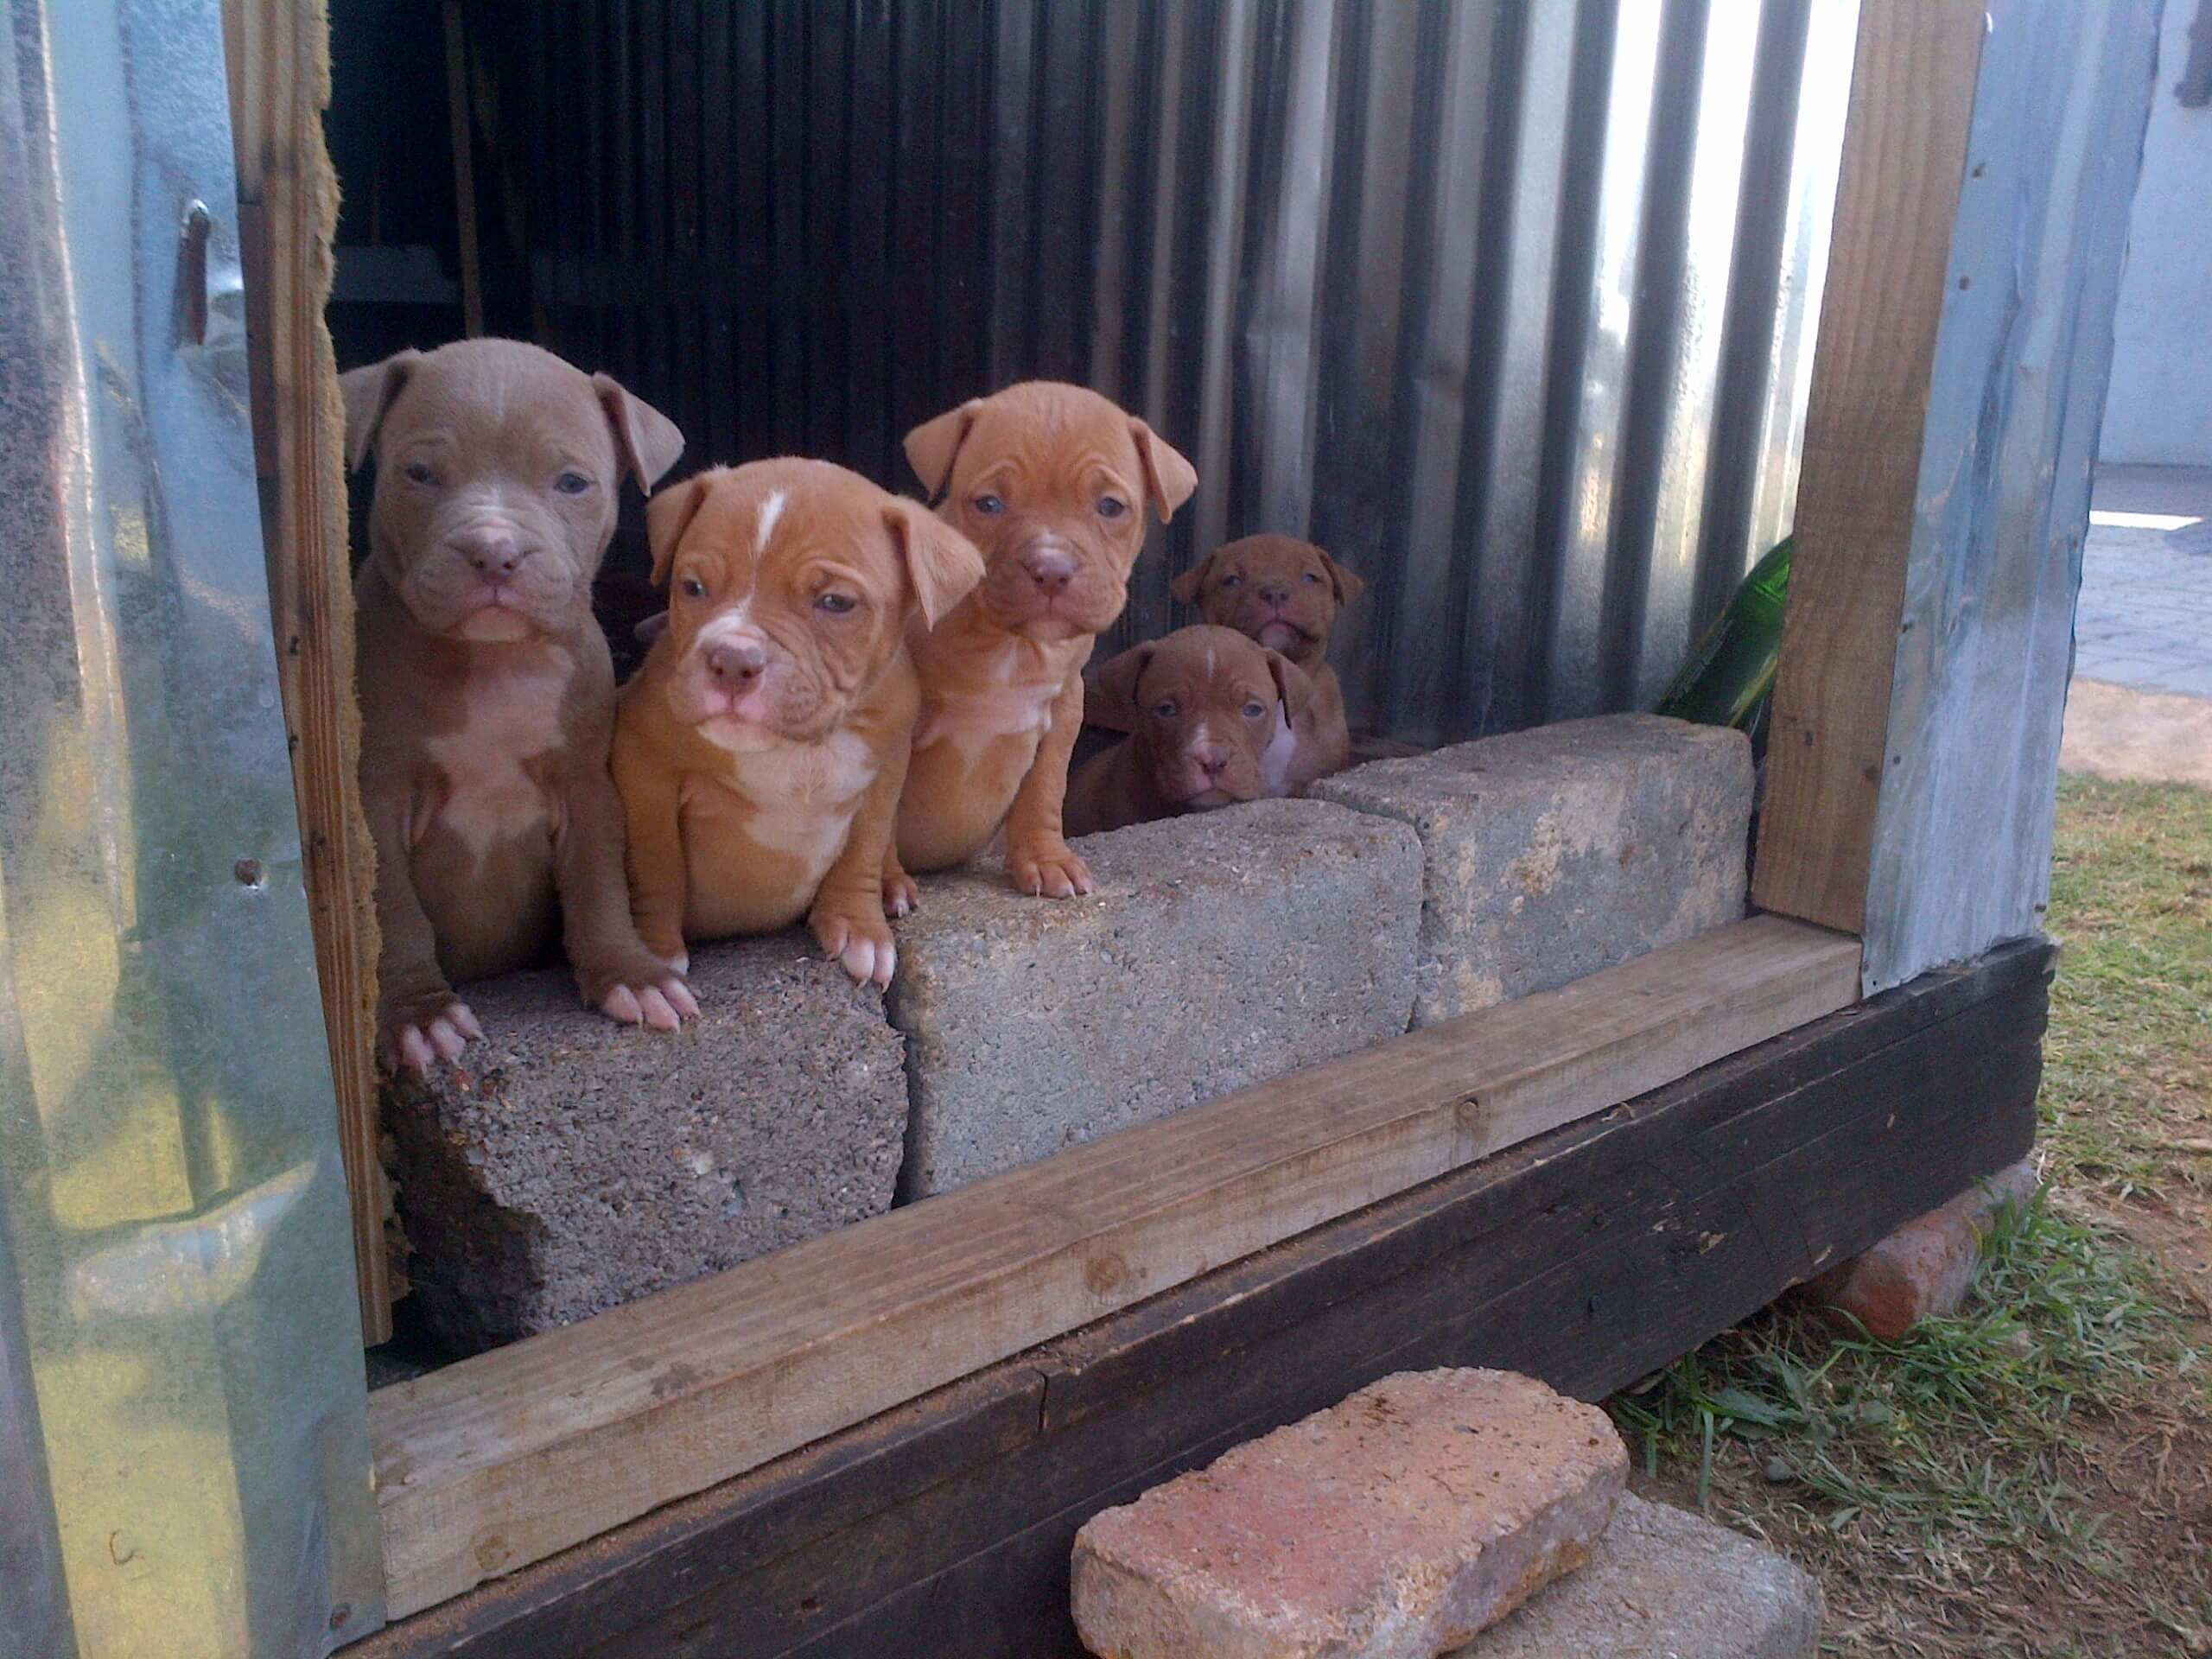 Pitbull Puppies for Sale in Johannesburg by Thabo Maluleke